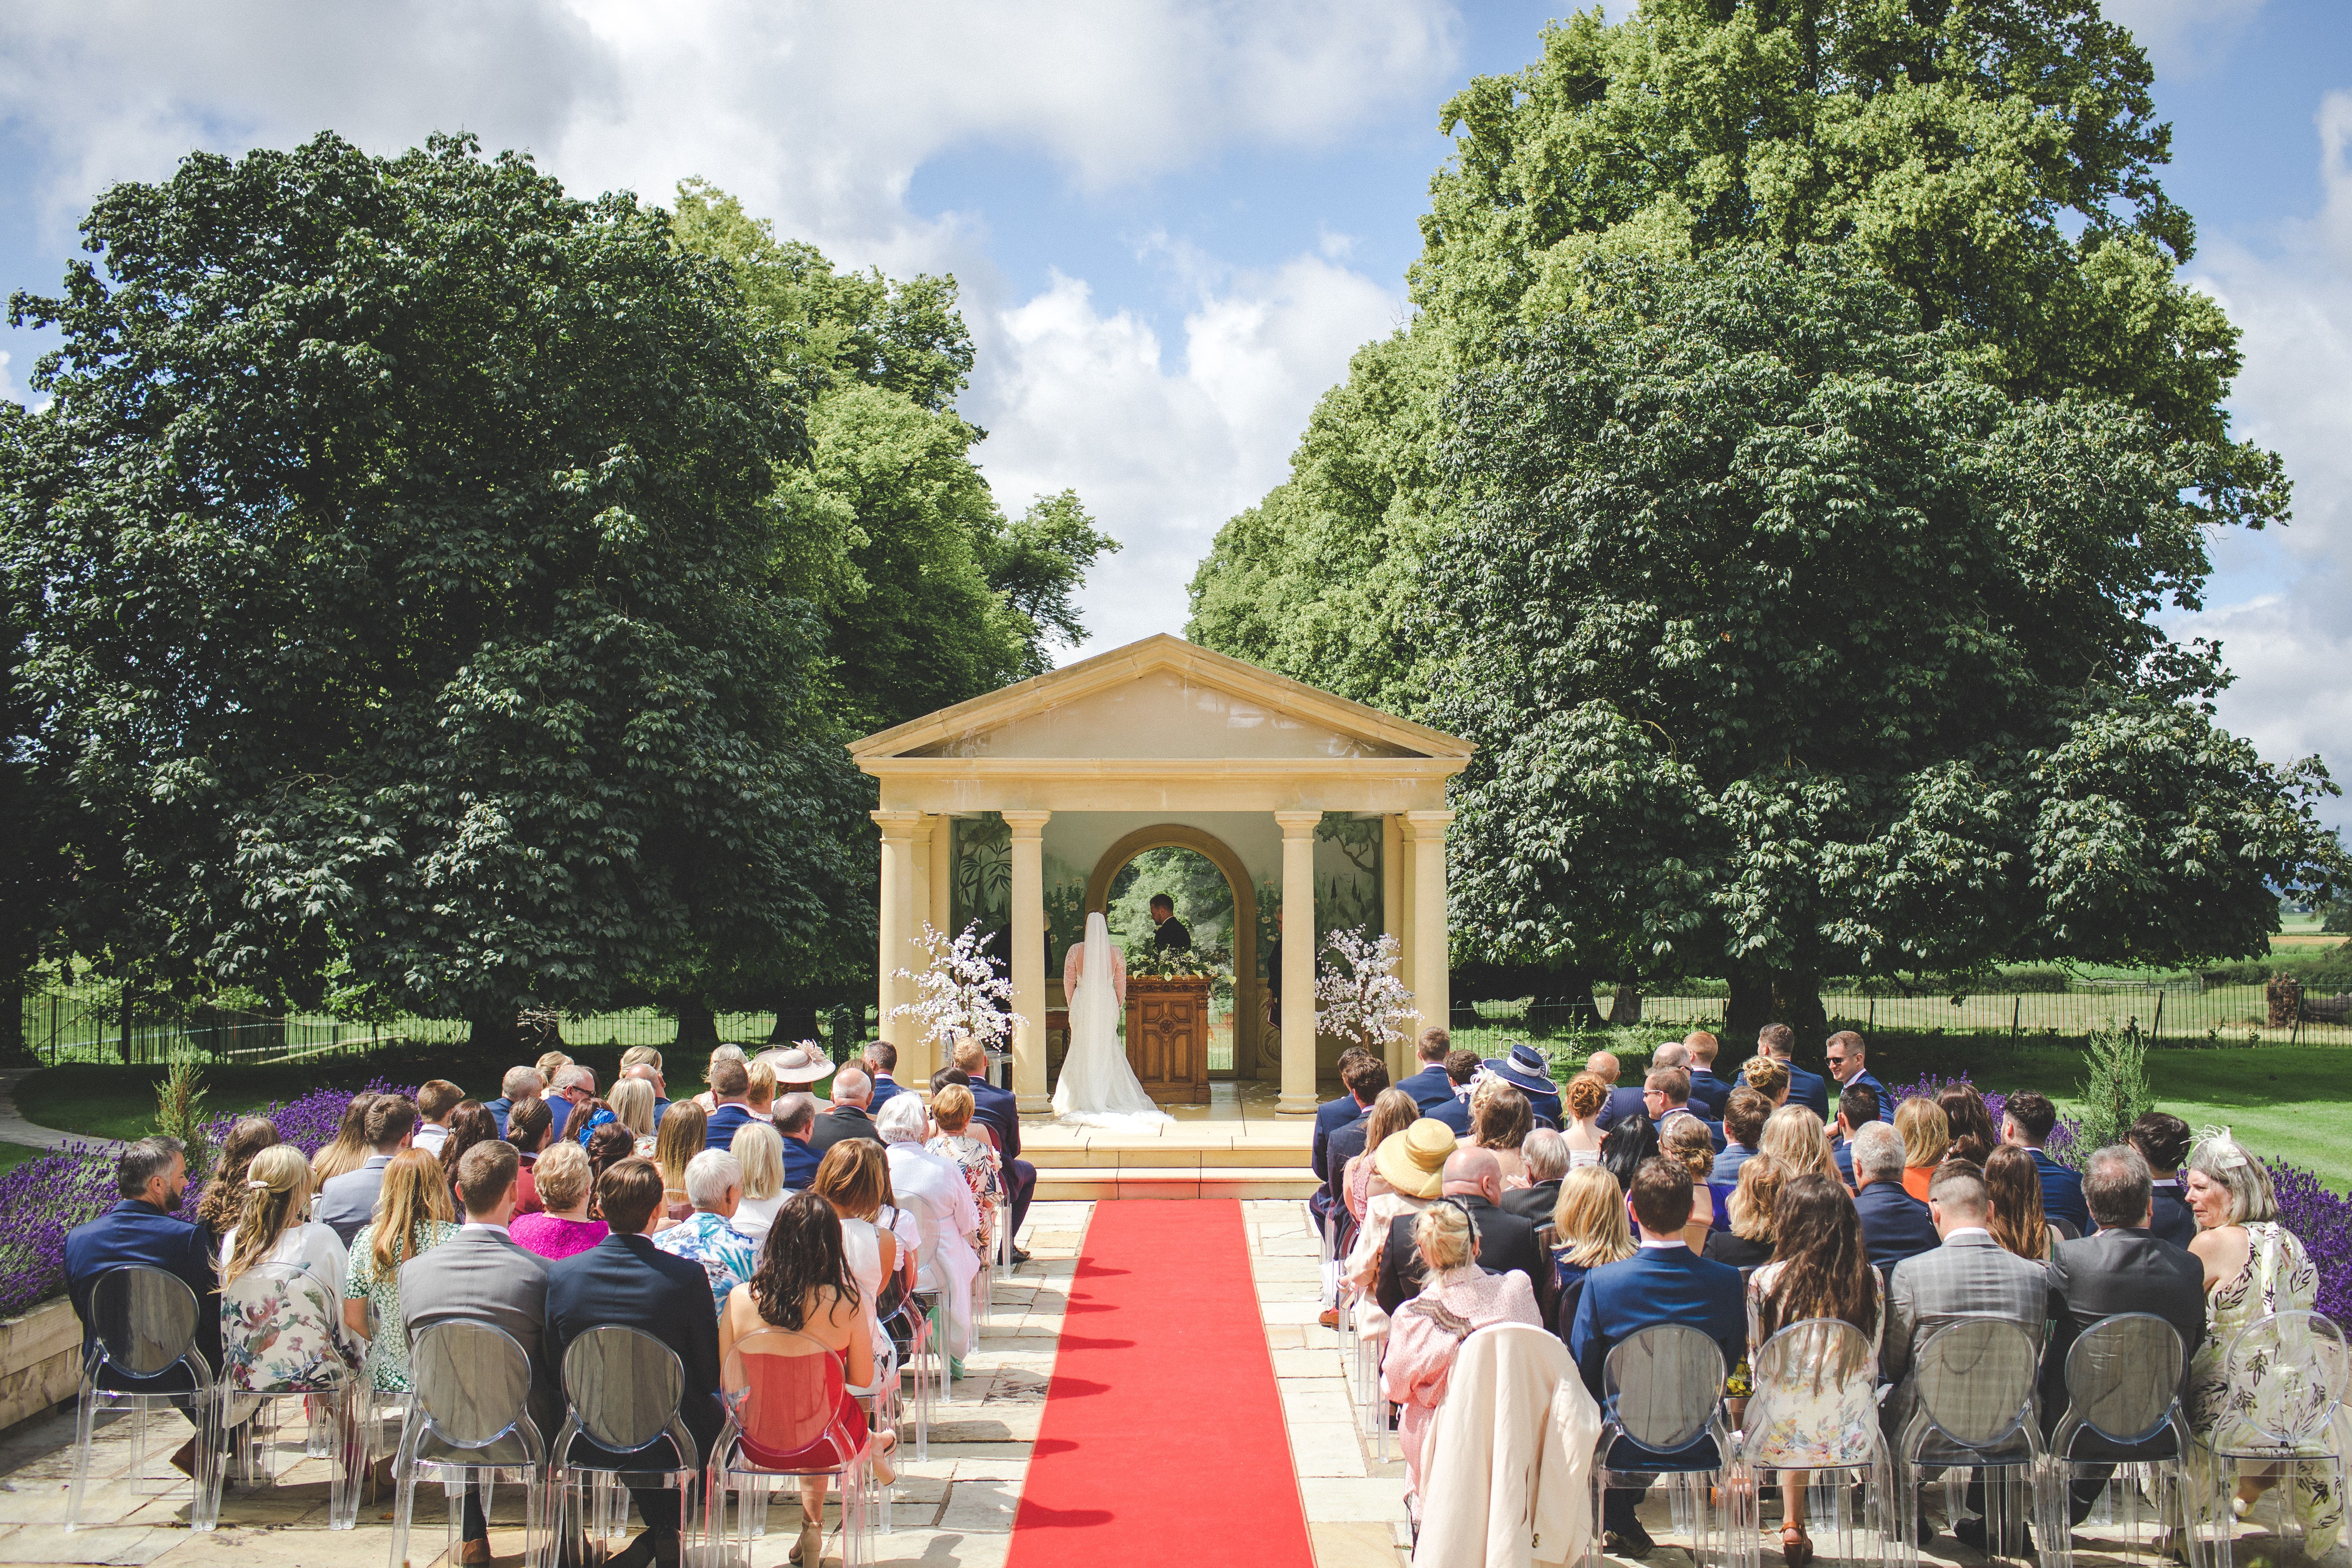 Outdoor Wedding Ceremonies: What the New Laws Could Mean for Your Wedding  Planning   Castle wedding venue, Wedding venues, Outdoor wedding venues